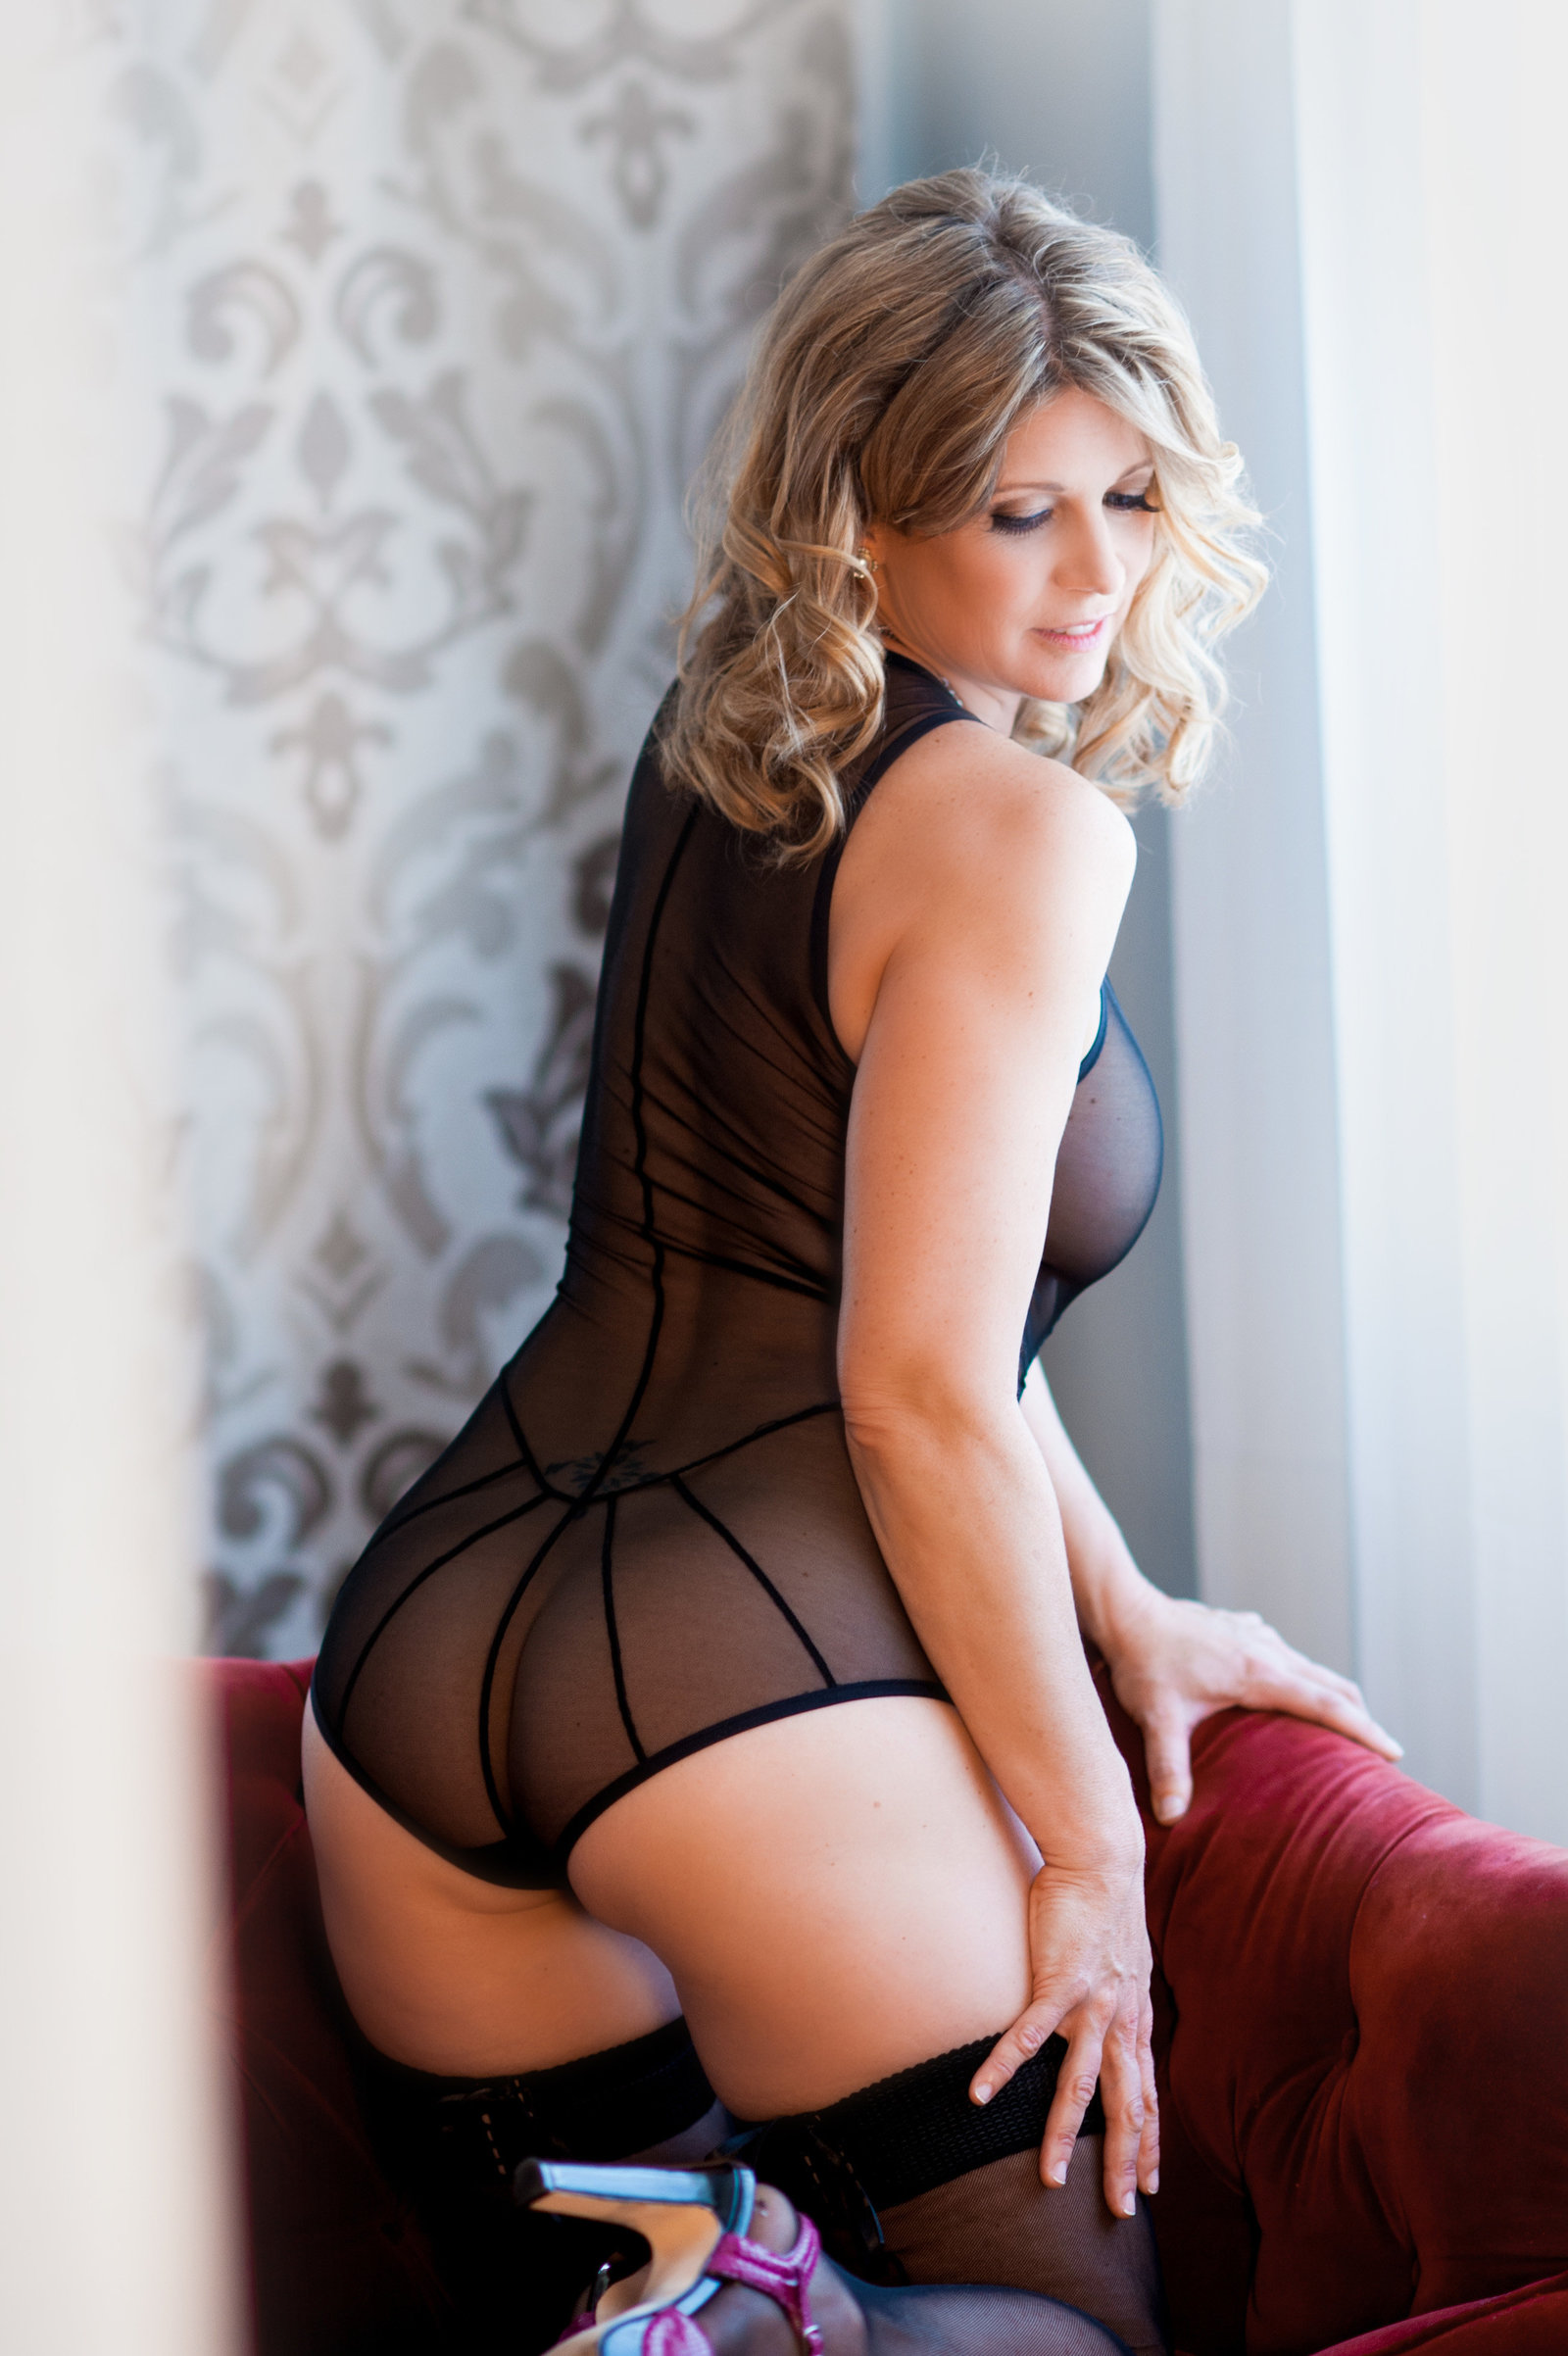 minneapolis-boudoir-photography-397